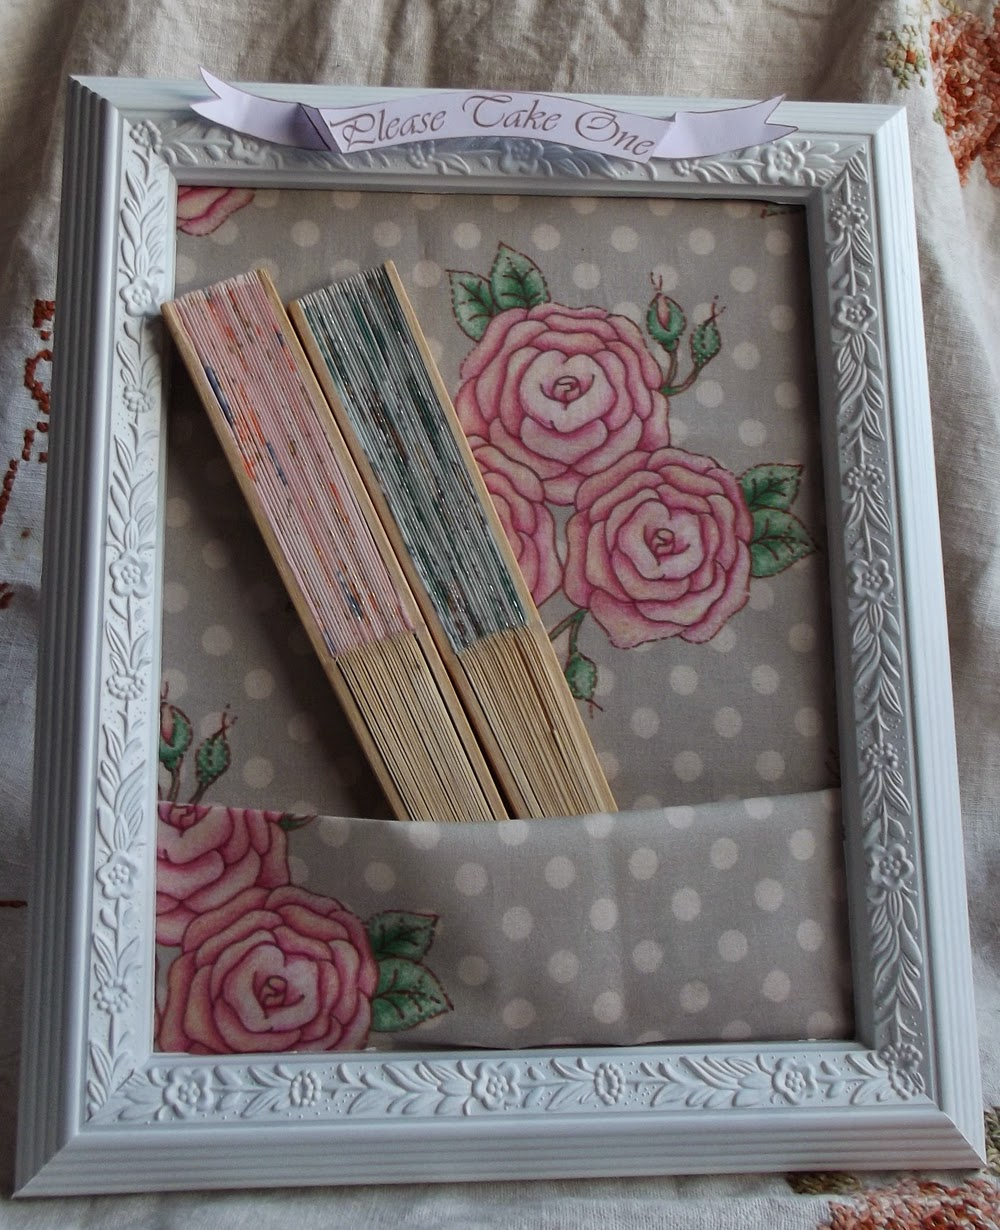 fans pocket roses frame wedding idea